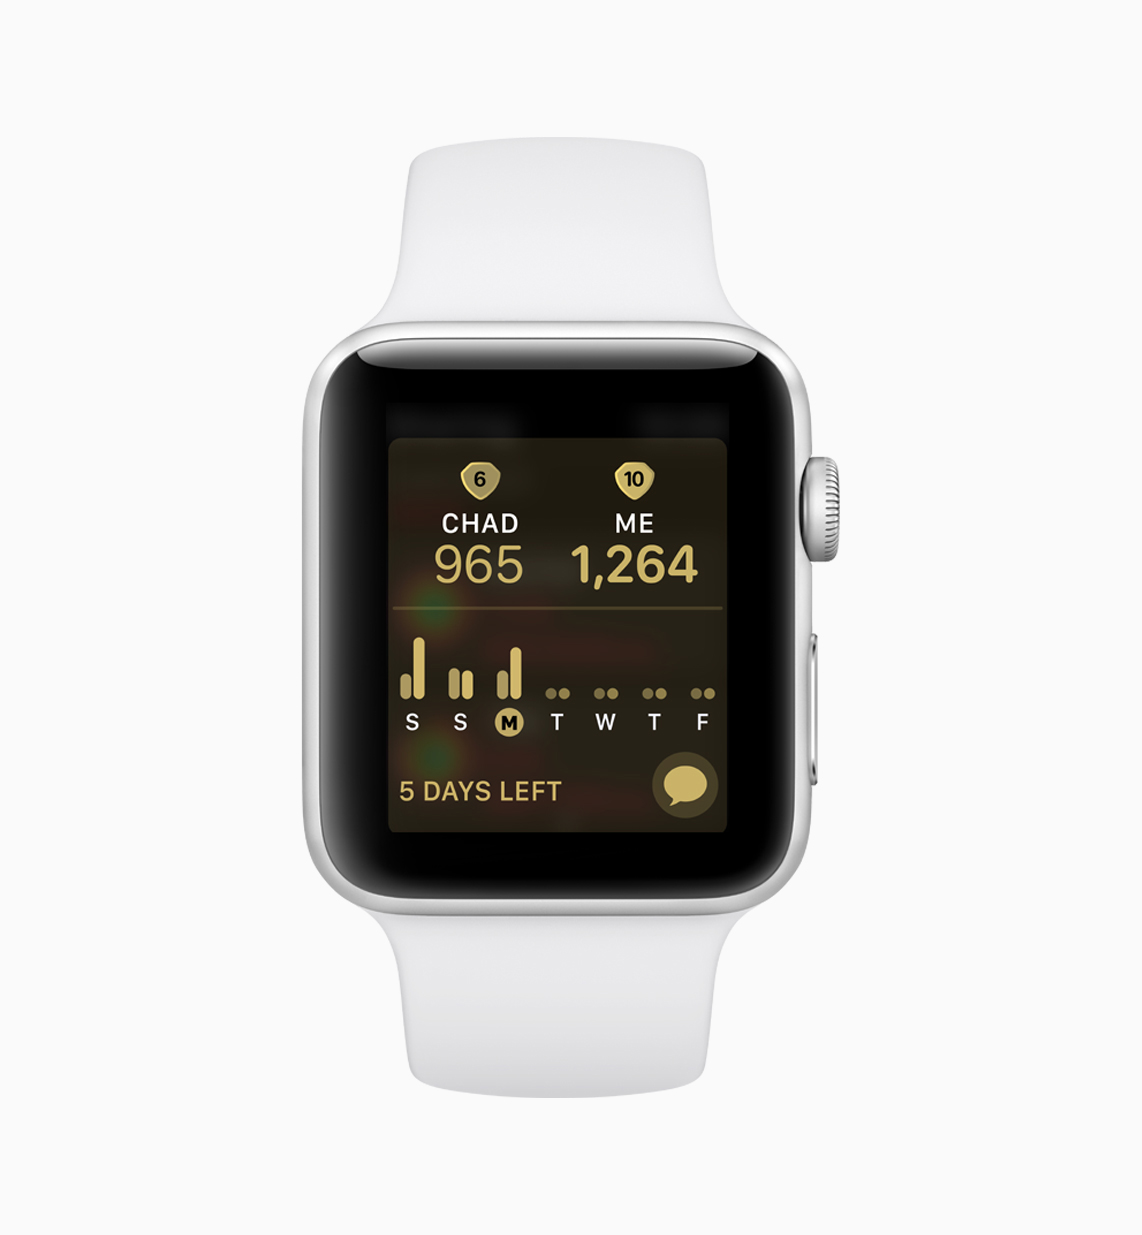 Apple-watchOS_5-Competitions-02-screen-06042018.jpg